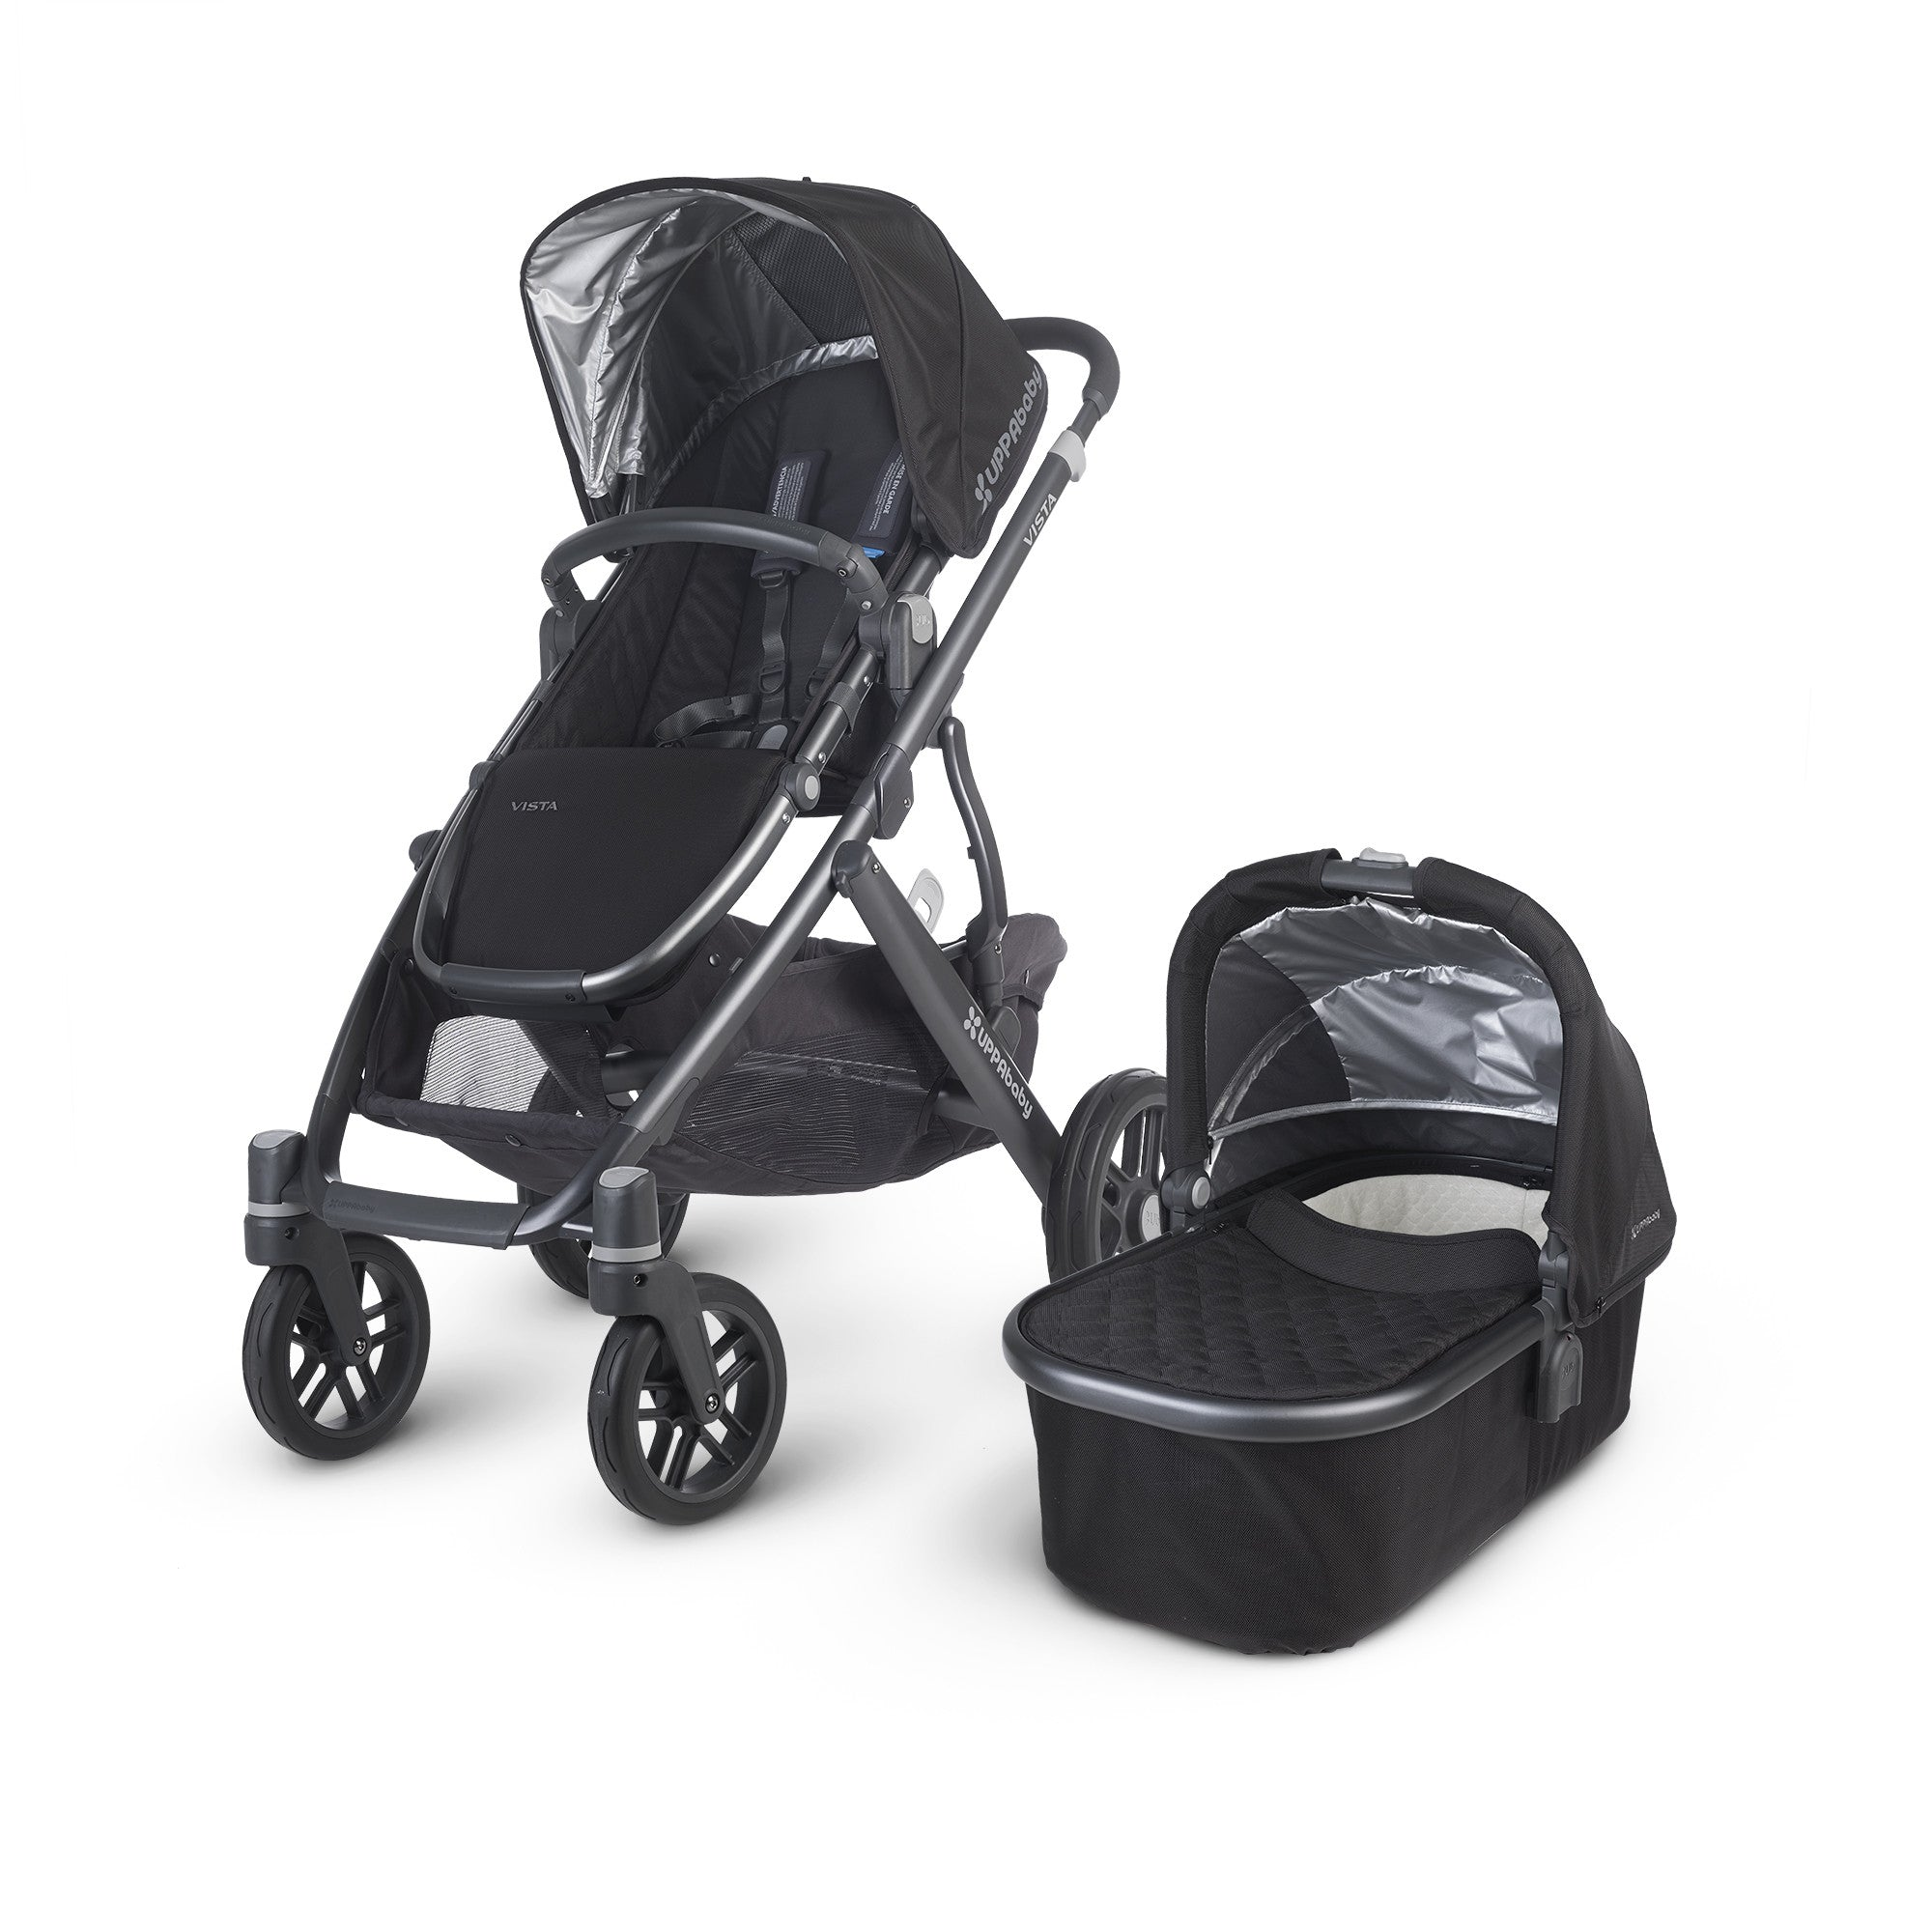 Vista Uppababy Pram Jake Black 2015 and Maxi Cosi Cabrio Car Seat - Baby Gosling  - 1